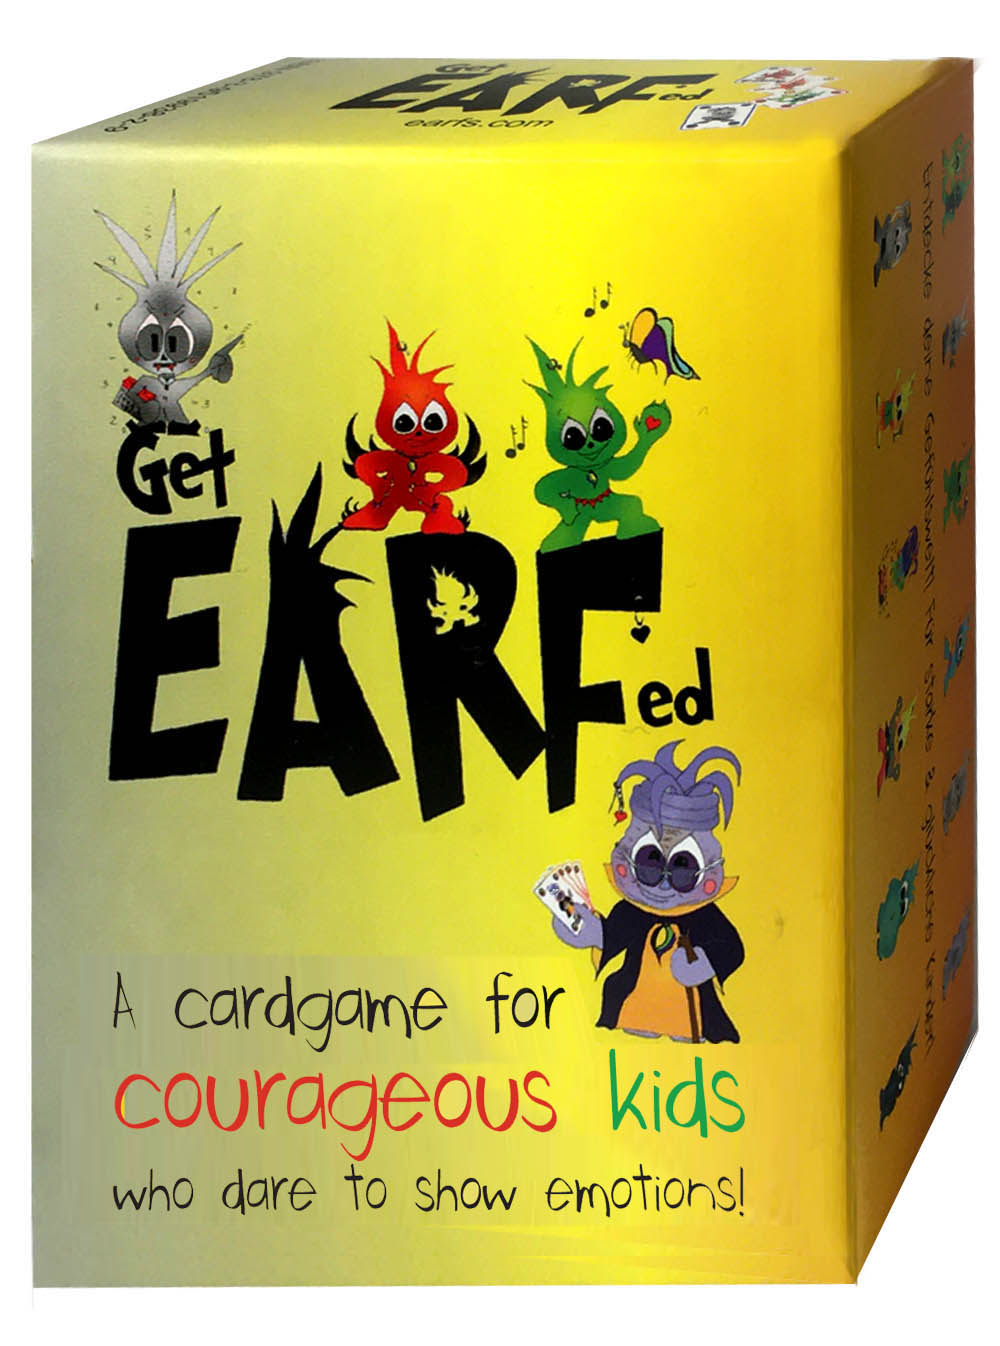 Self-confidence for children: Get Earfed cardgame